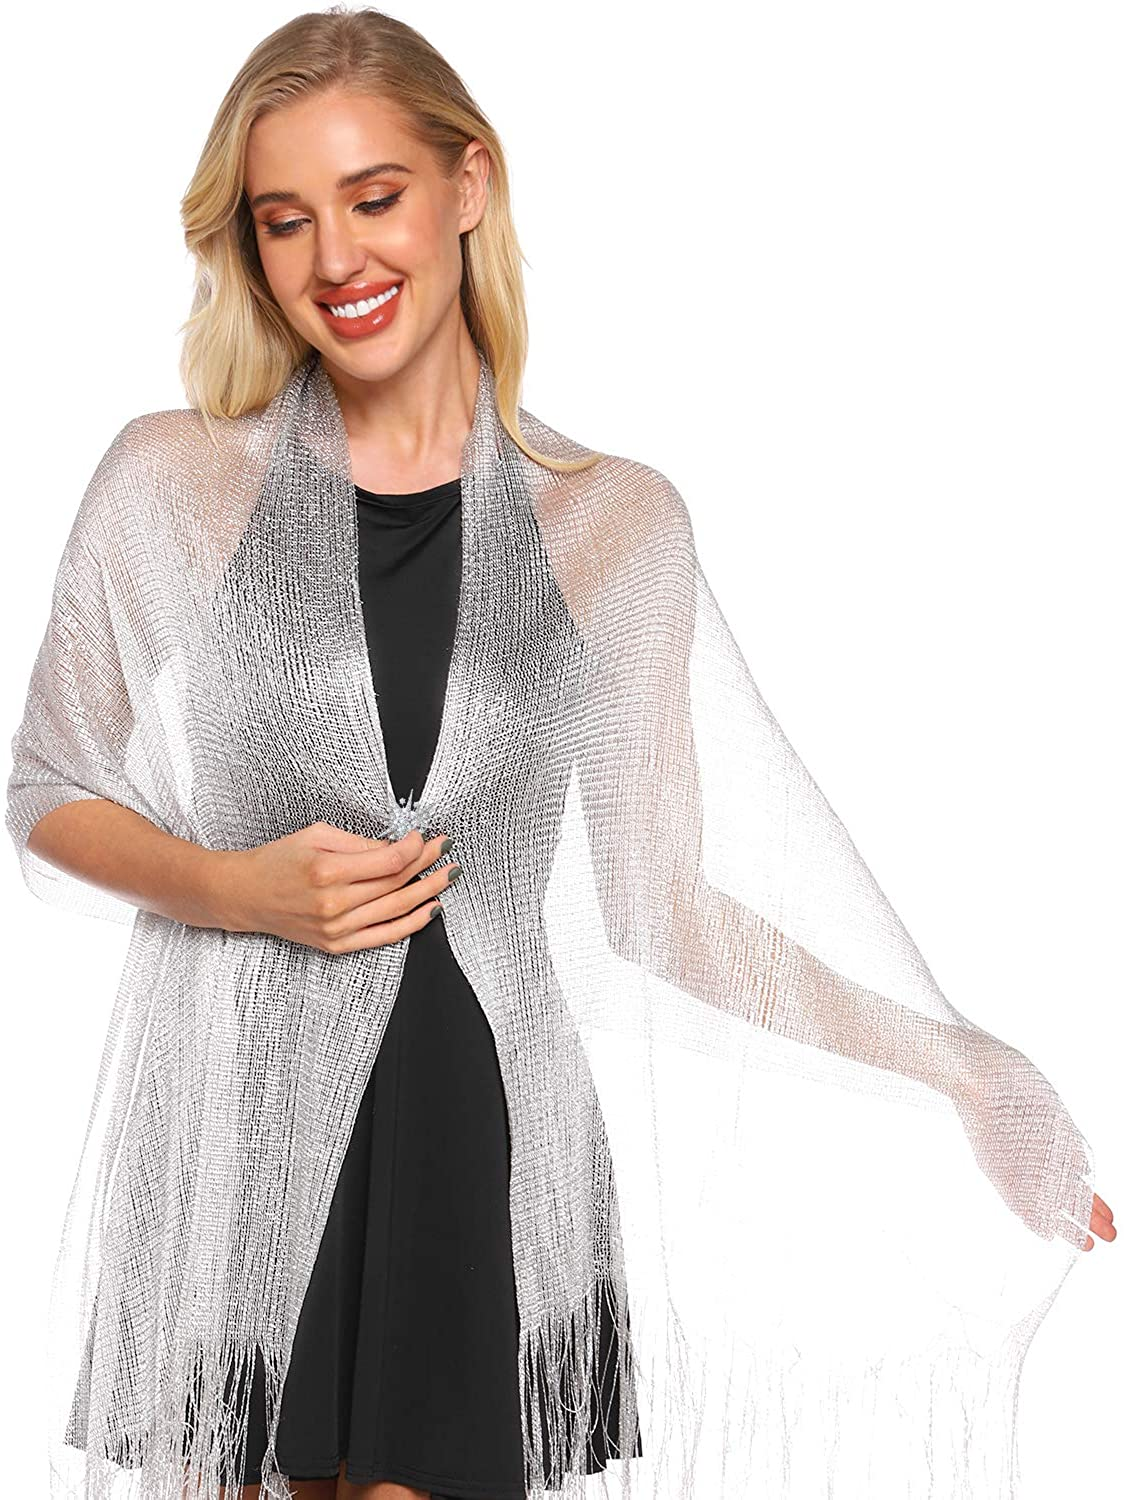 Metallic Shimmering Shawls and Wraps with Snowflake Scarf Clip for Evening Dress